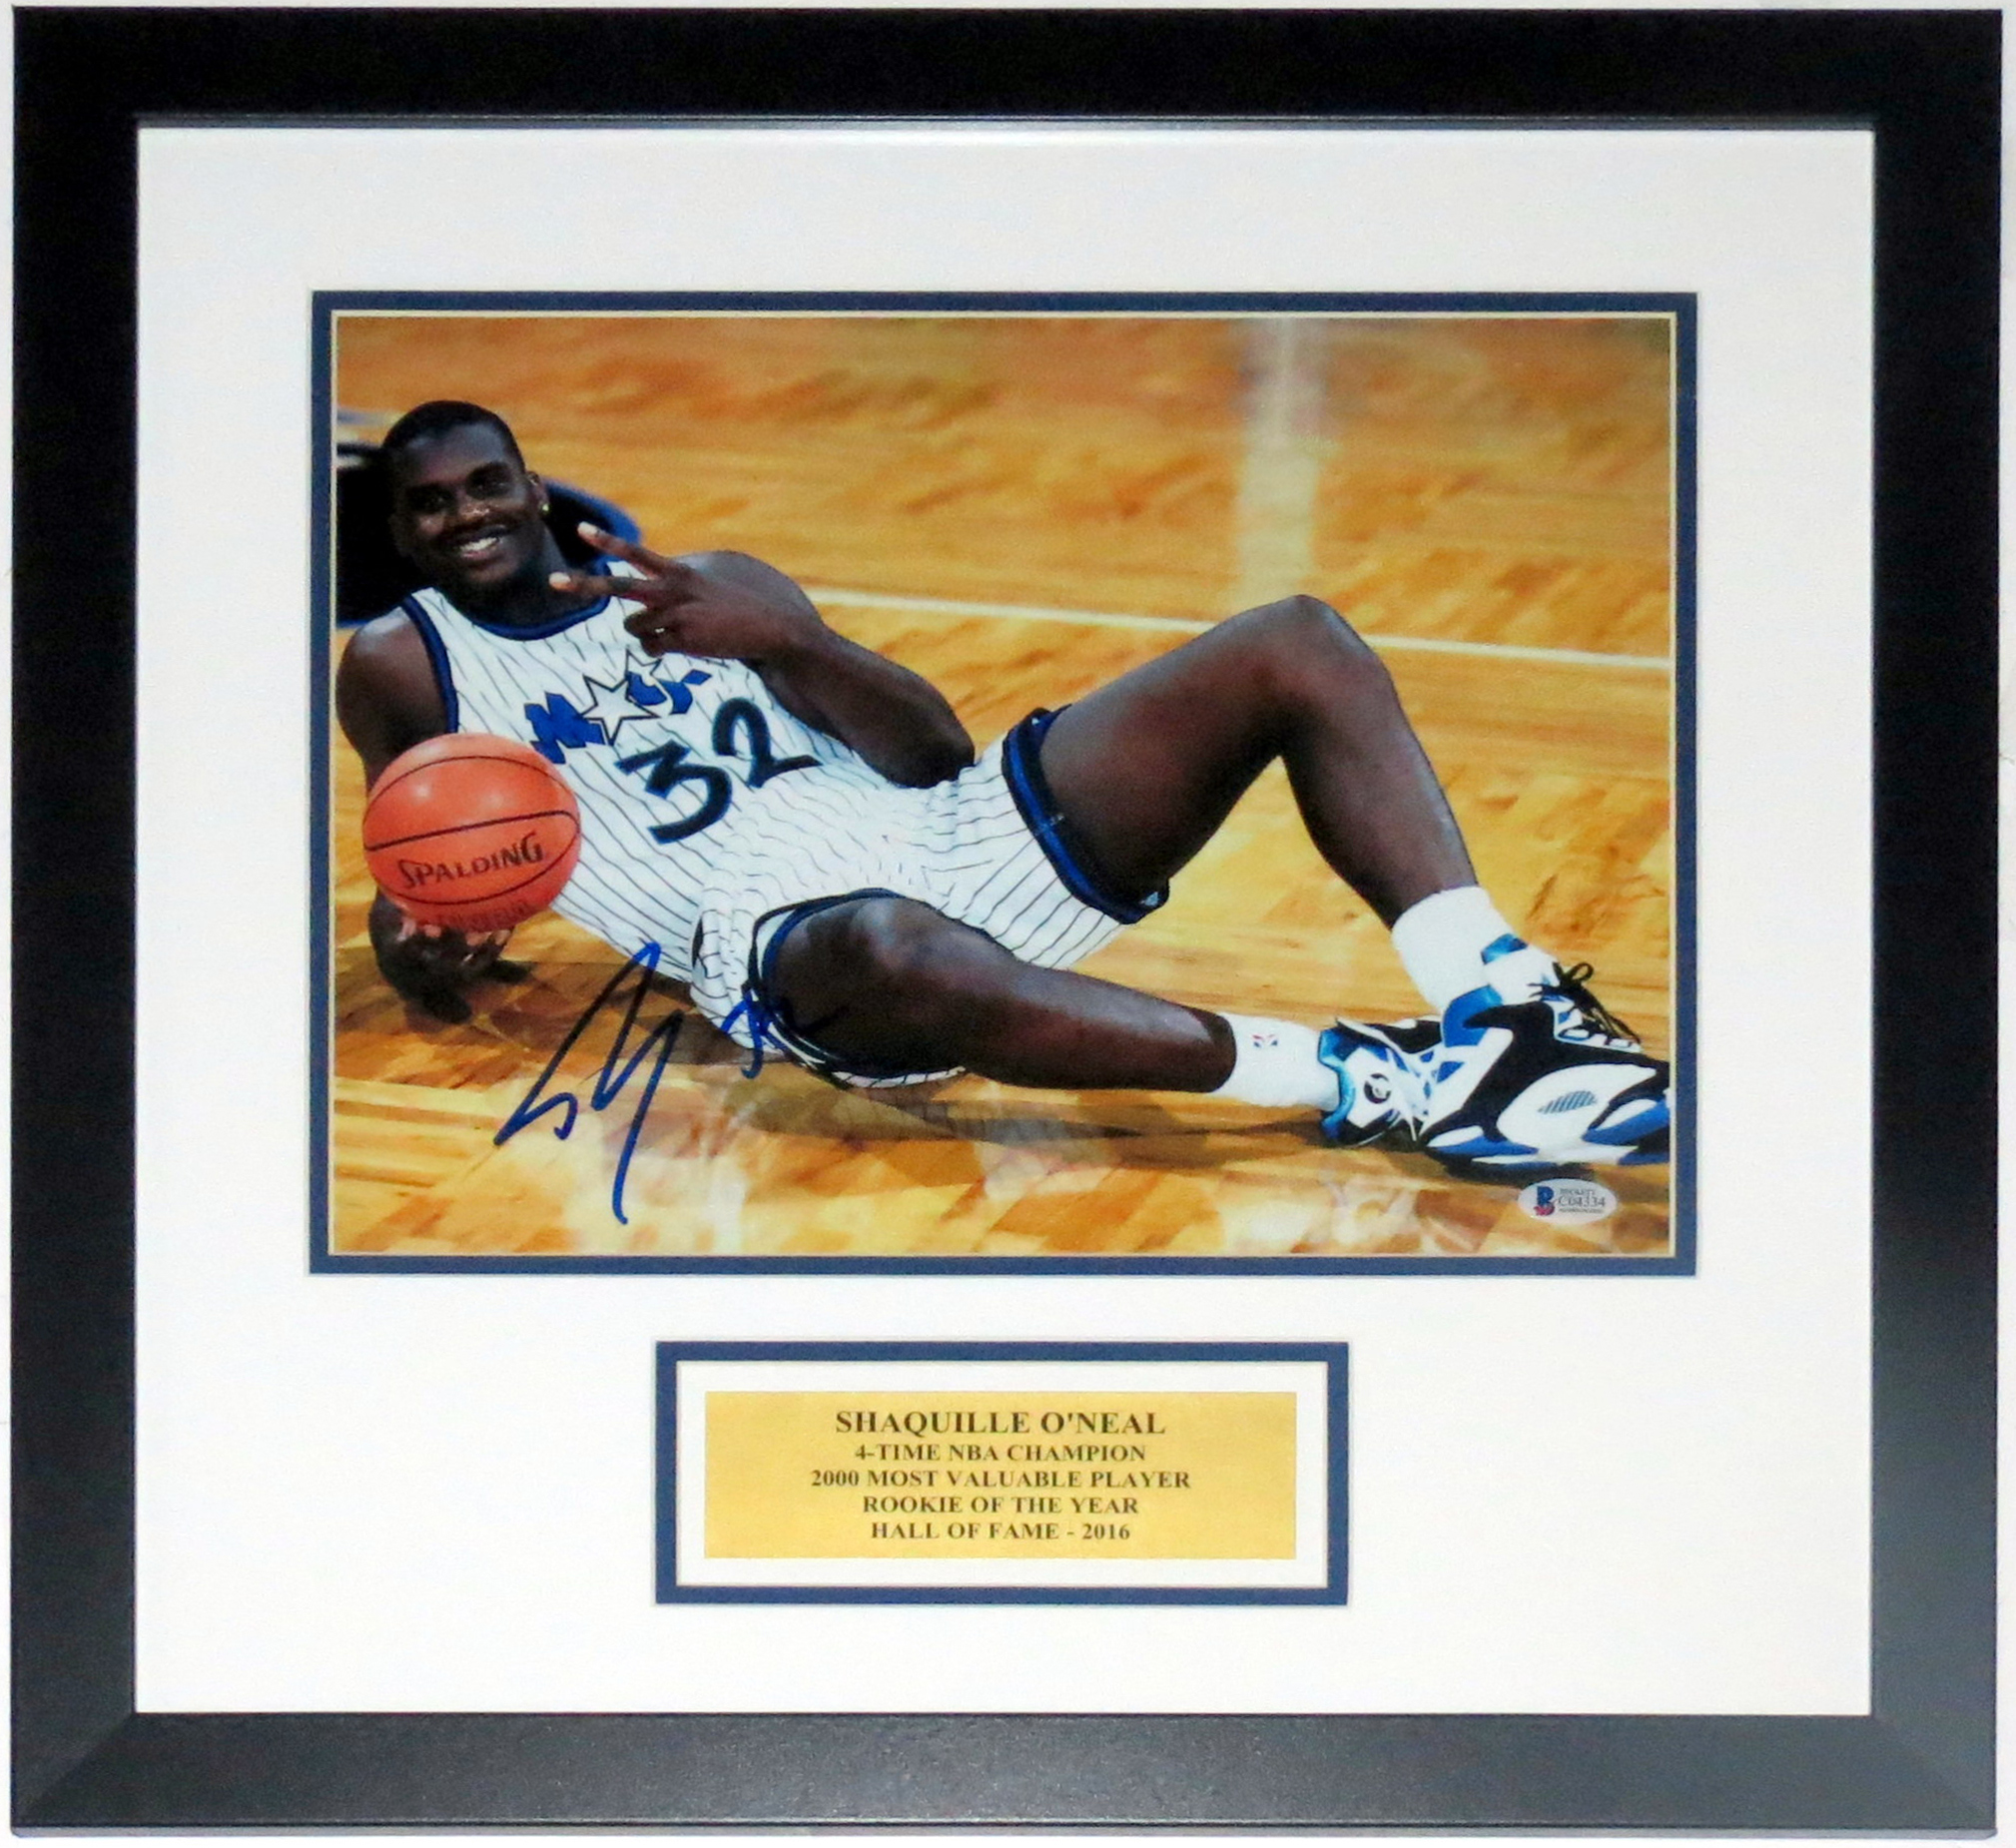 Shaquille O'Neal Signed 11x14 Photo - Beckett Authentication Services COA Authenticated - Professionally Framed & Plate